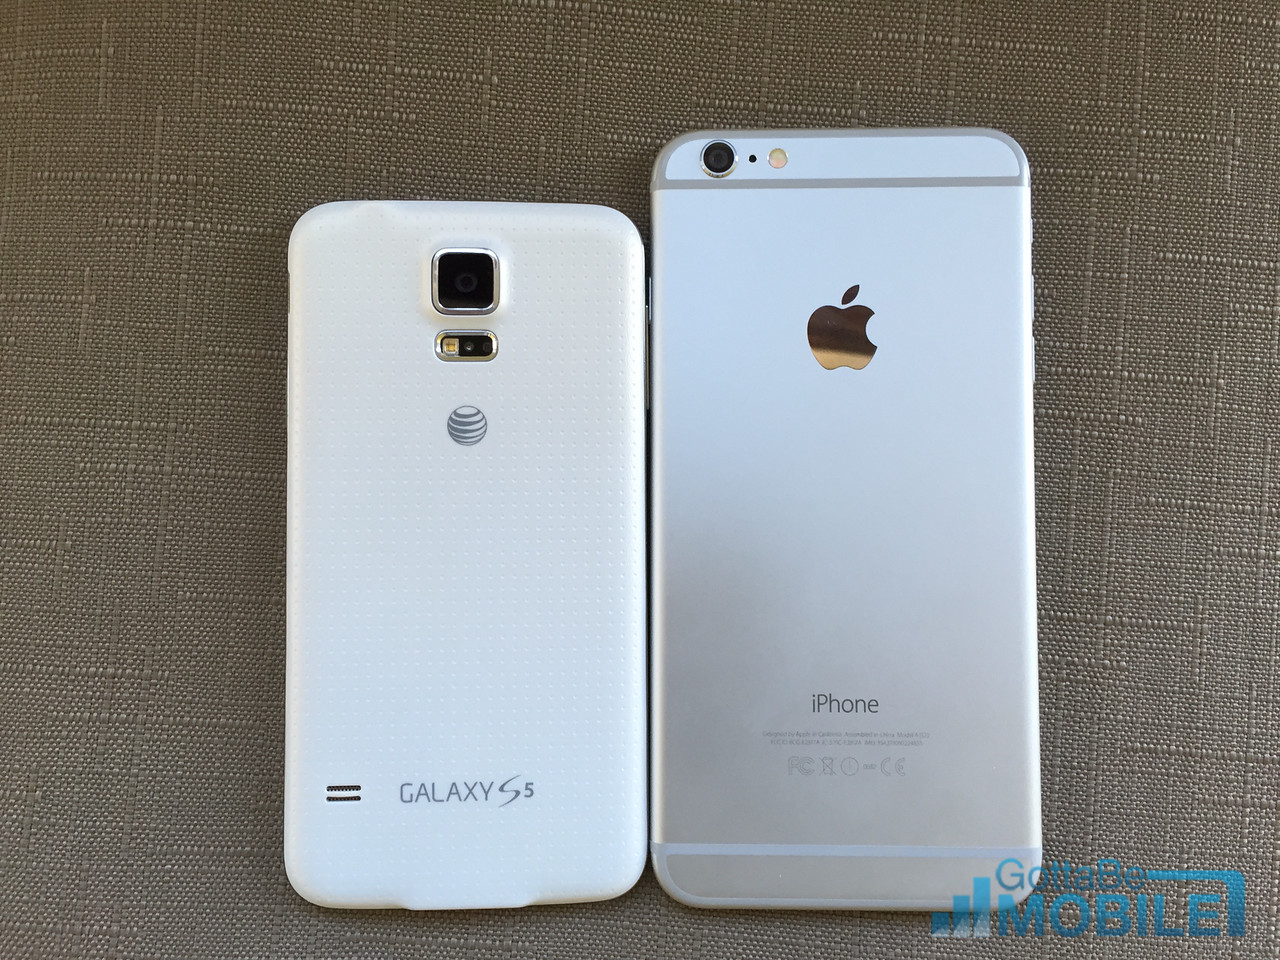 Galaxy Alpha Vs S5 samsung galaxy s6 release details emerge